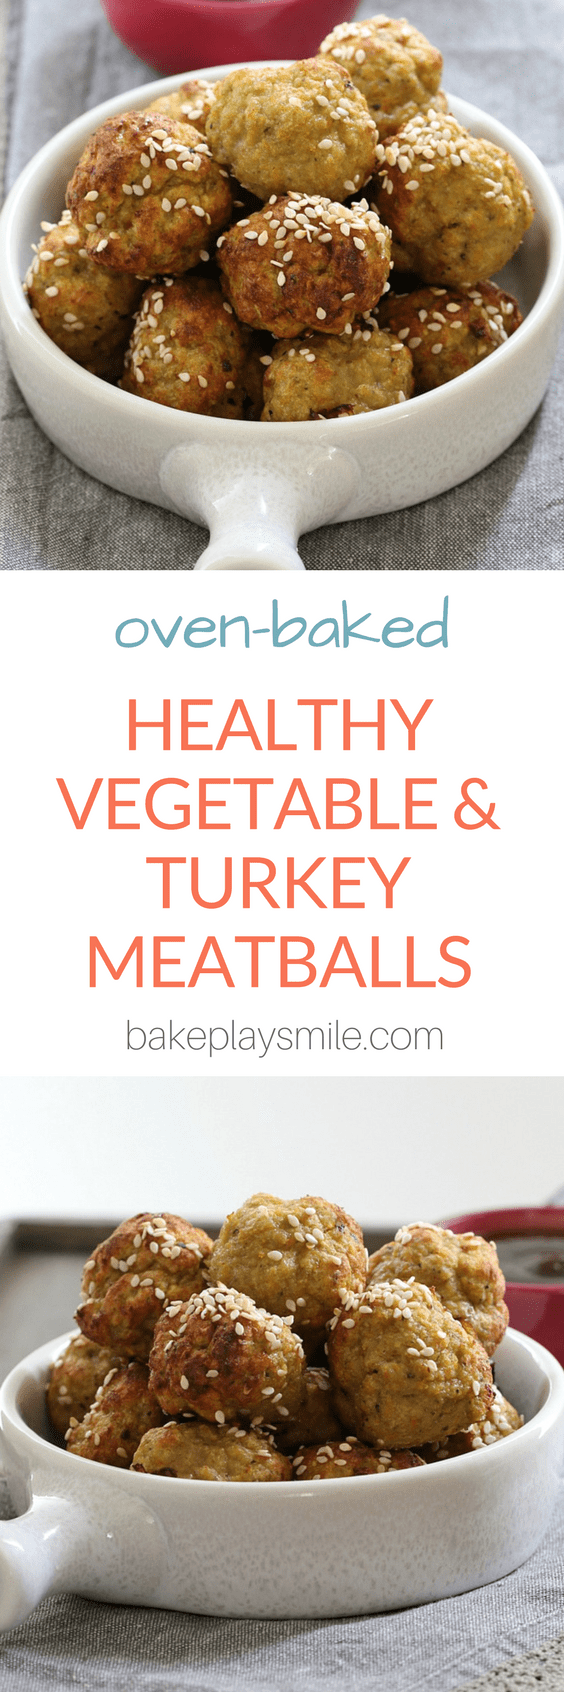 A photo of a title for oven baked Healthy Vegetable and Turkey Meatballs